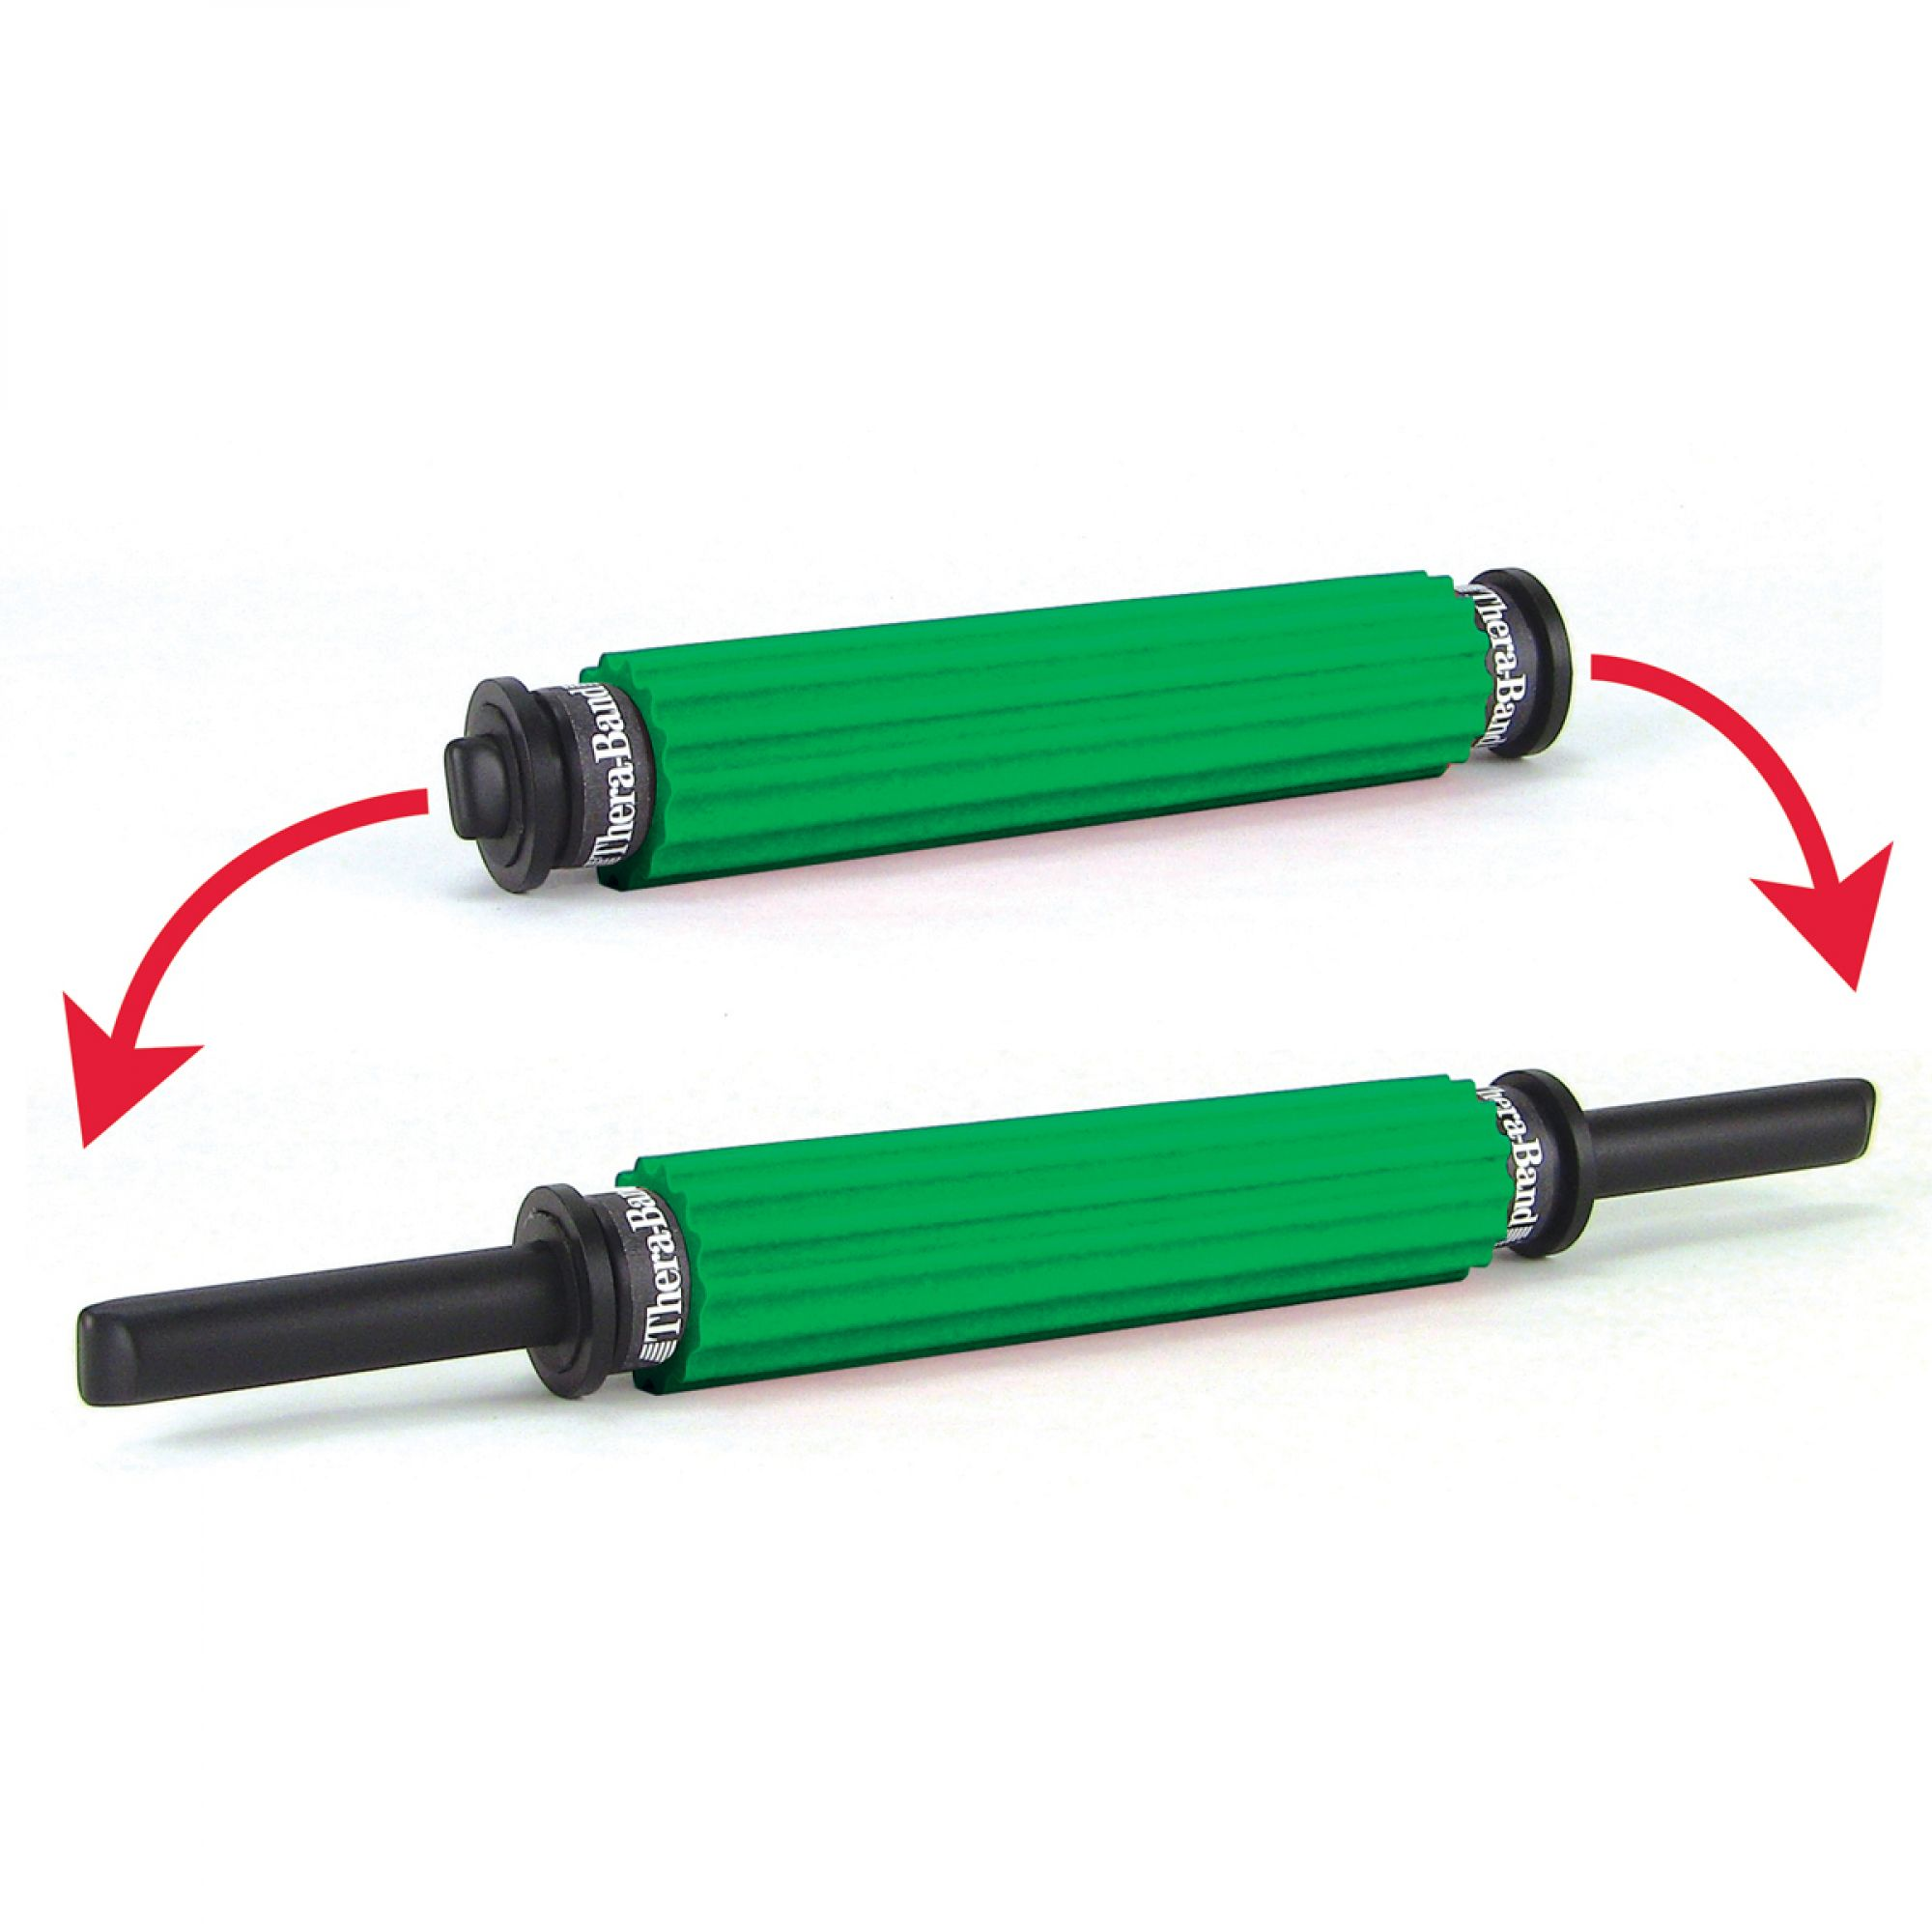 Thera-Band® Roller Massager - Portable, Green Ridged